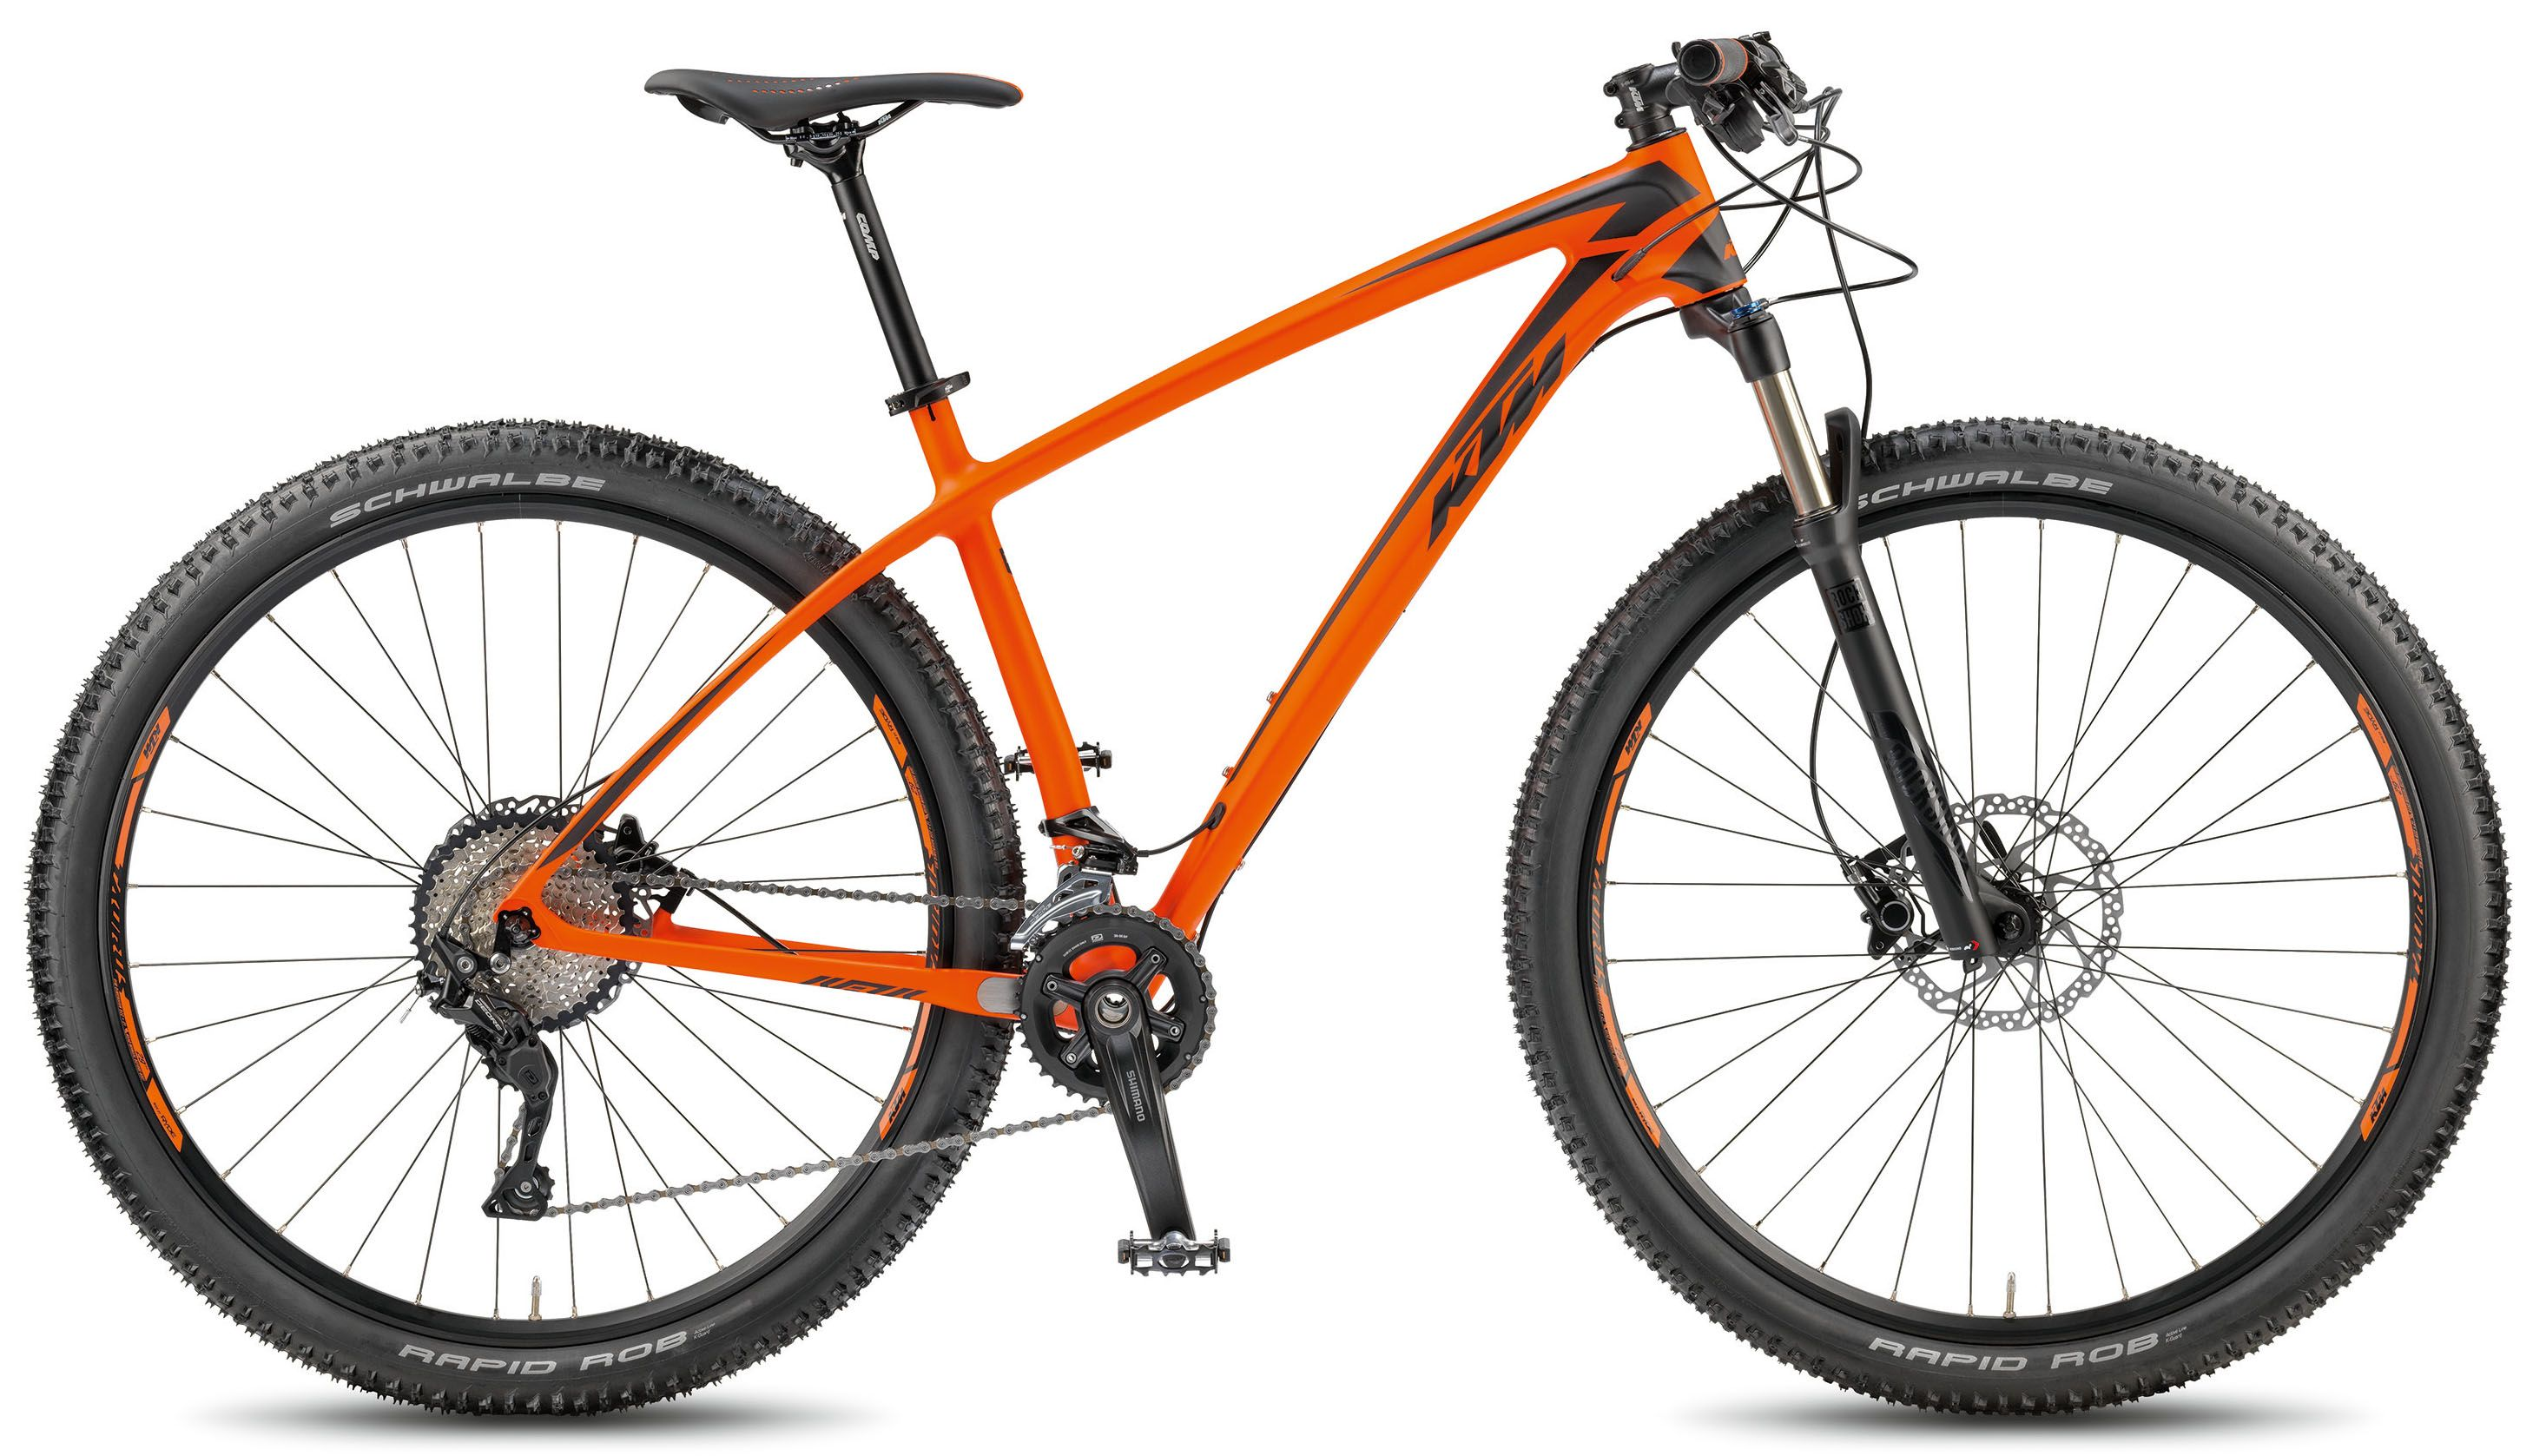 Велосипед KTM Aera Comp 20 2018 велосипед specialized crave comp 29 2014